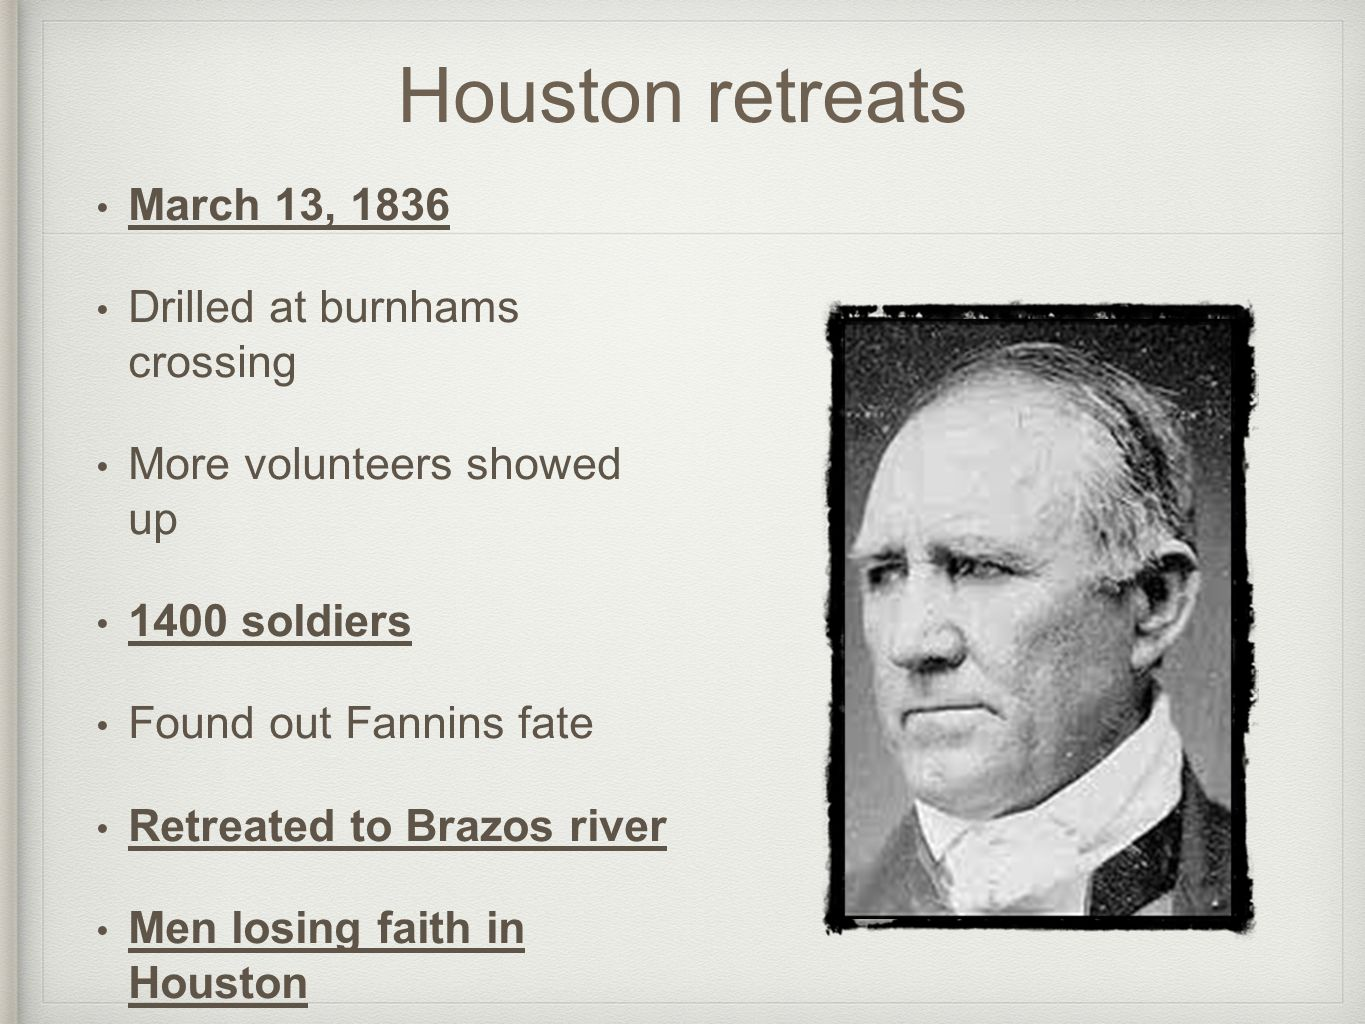 Houston retreats March 13, 1836 Drilled at burnhams crossing More volunteers showed up 1400 soldiers Found out Fannins fate Retreated to Brazos river